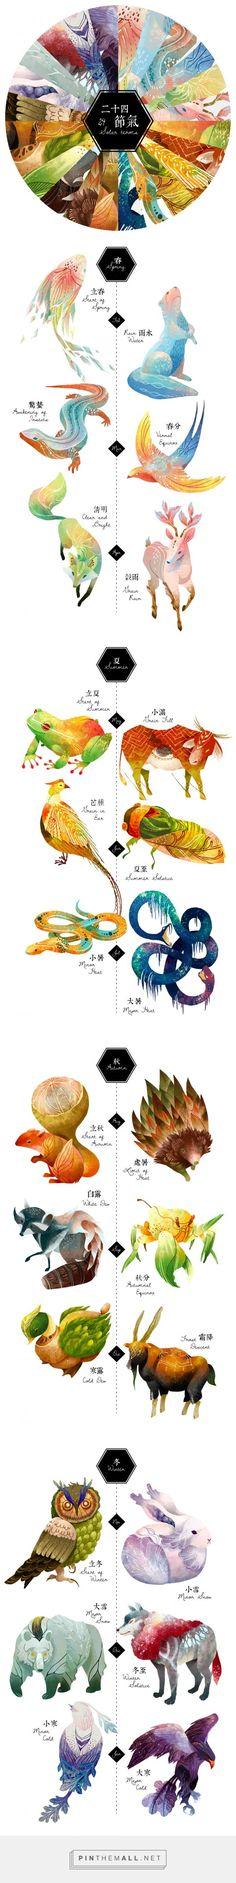 The 24 Solar Terms - Character Design on Behance - created via https://pinthemall.net Monster, Animal Drawings, Art Drawings, Graphic Design Illustration, Illustration Art, Illustrations And Posters, Creature Design, Gouache, Asian Art